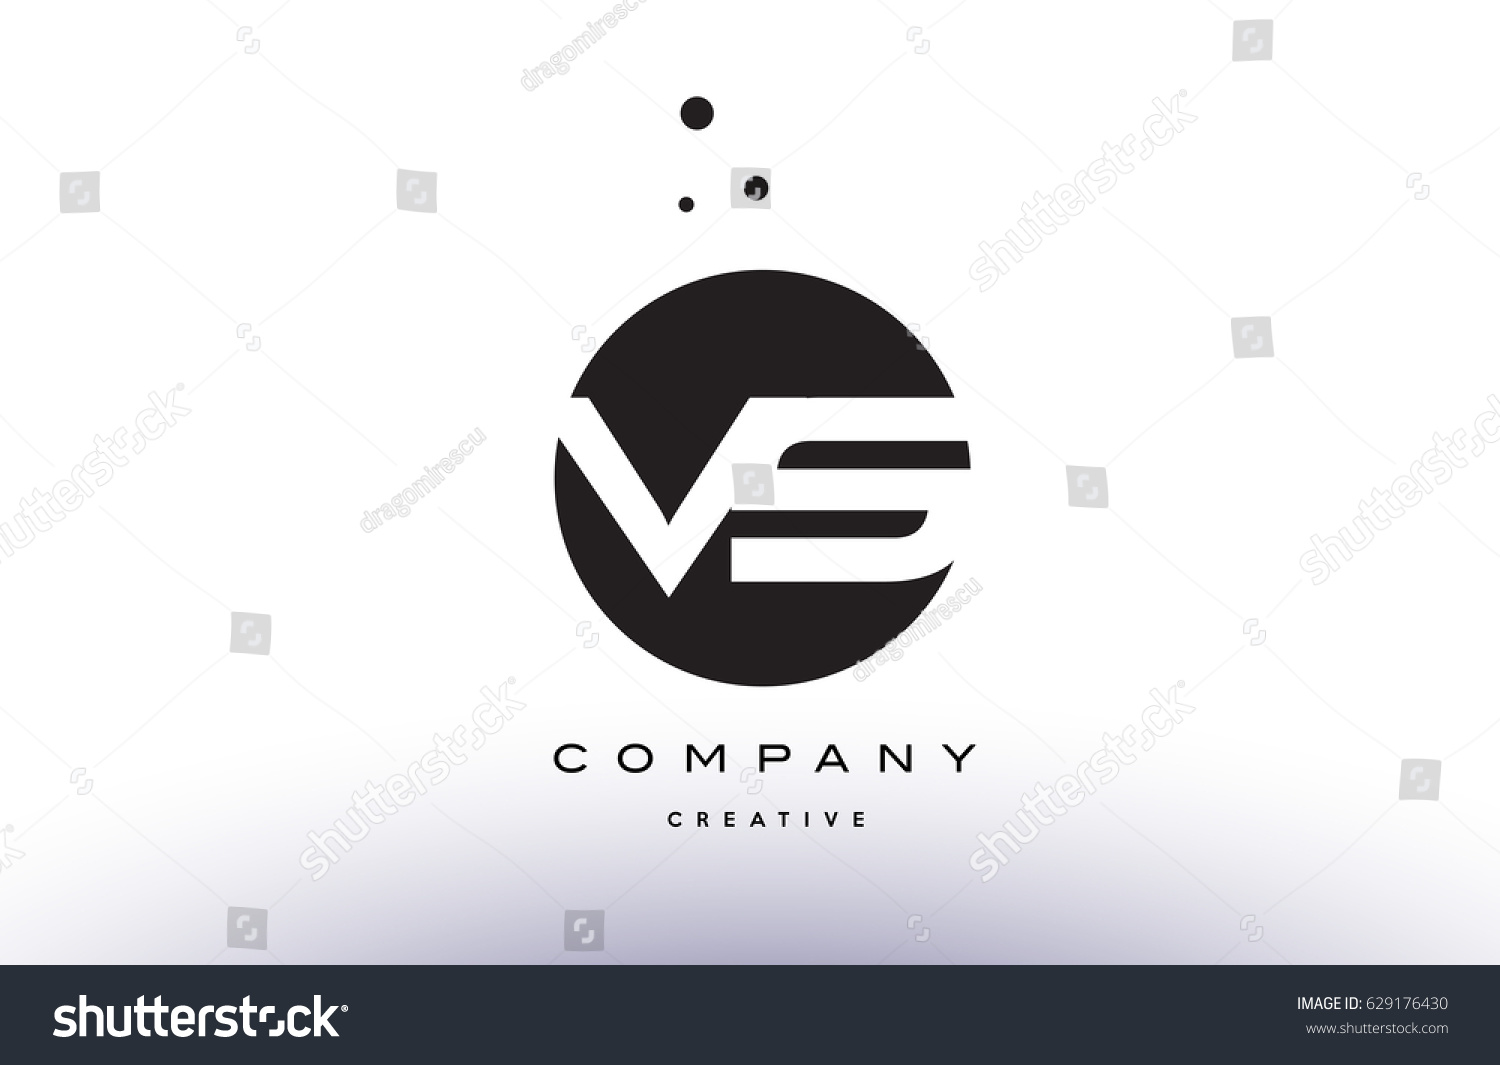 Vs v s alphabet company letter stock vector 629176430 shutterstock vs v s alphabet company letter logo design vector icon template simple black white circle dot dots buycottarizona Image collections